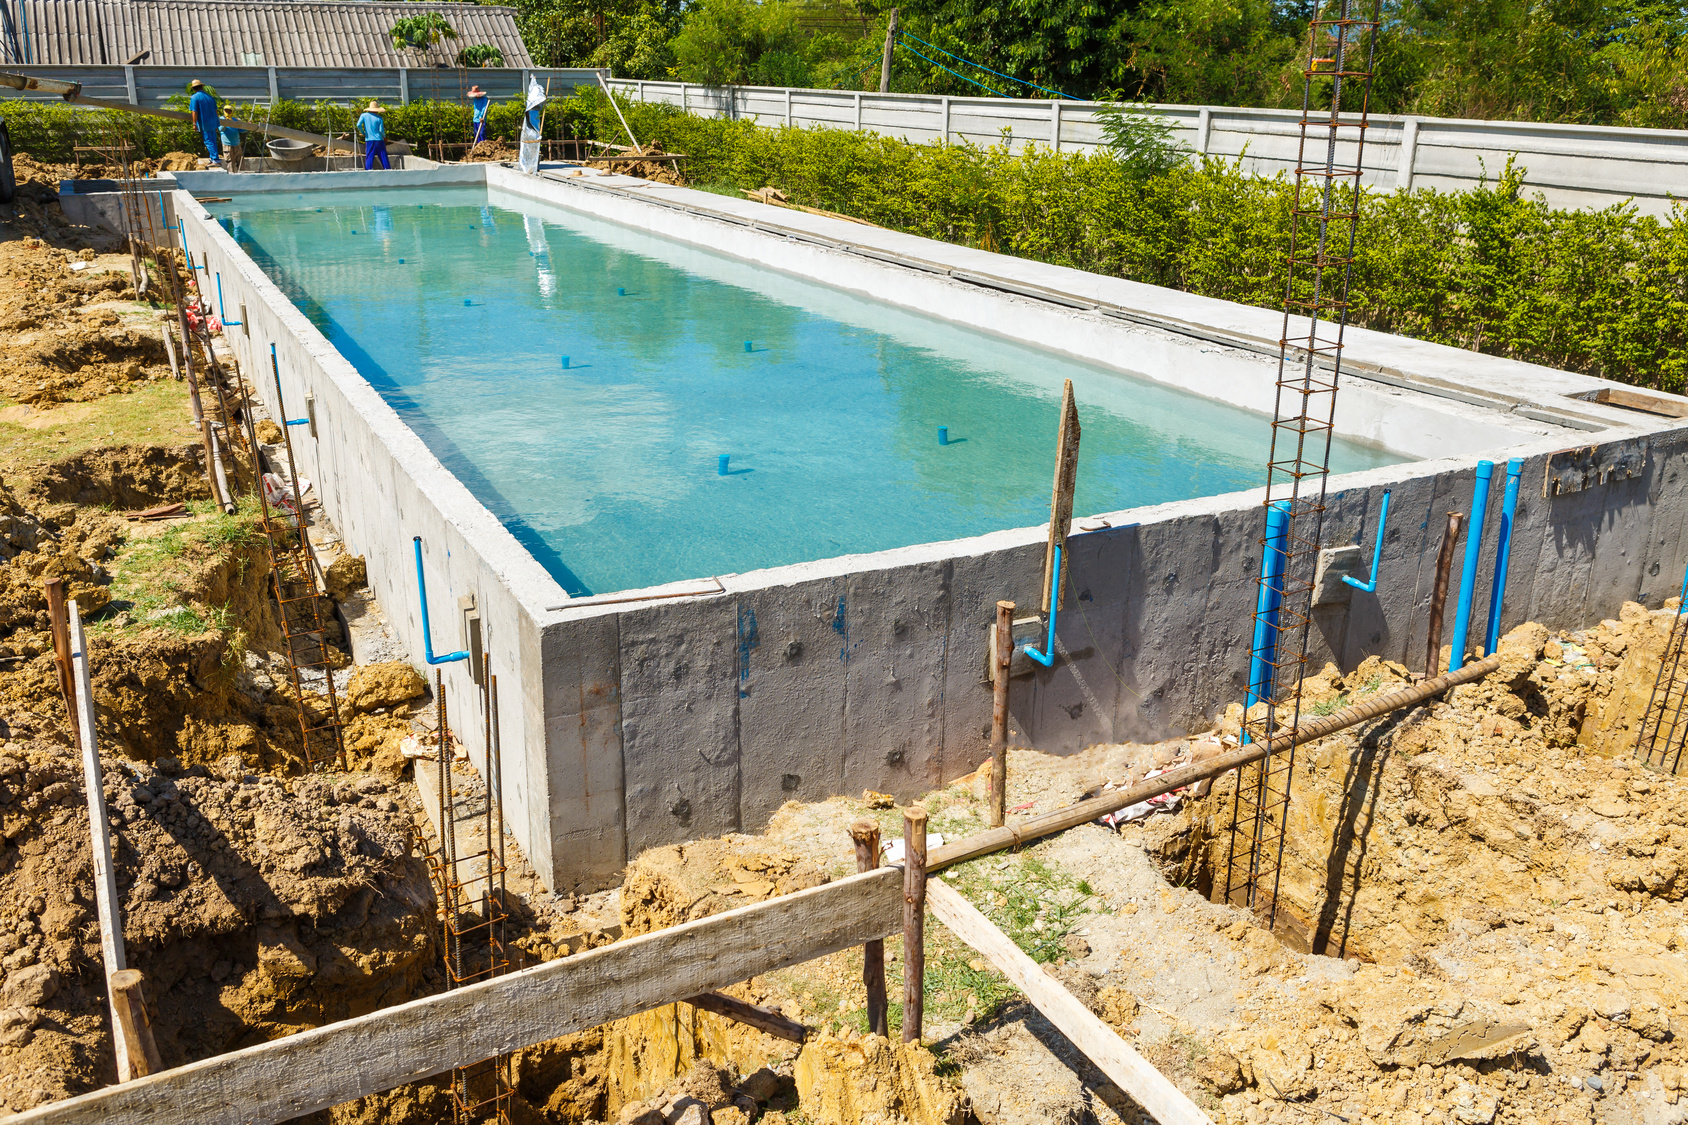 Construire une piscine b ton traditionnelle en kit for Construire sa piscine en kit